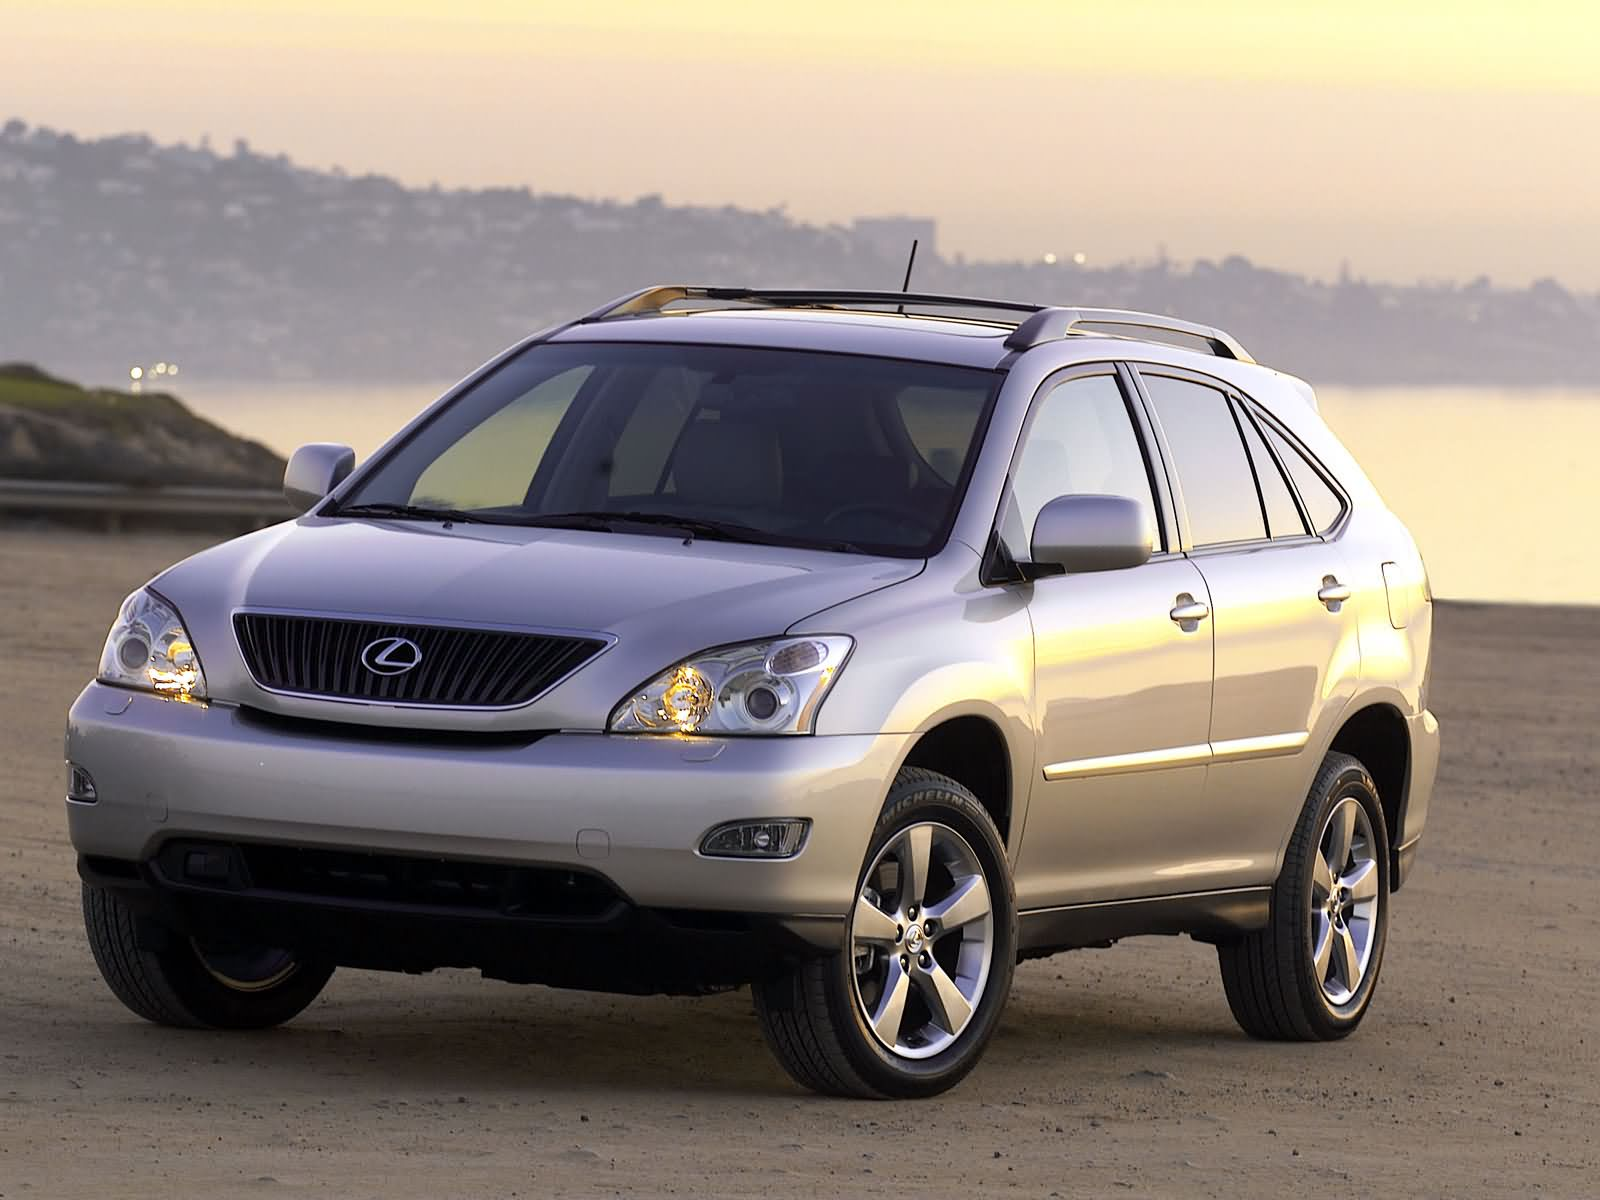 Lexus RX 330 photo 3006